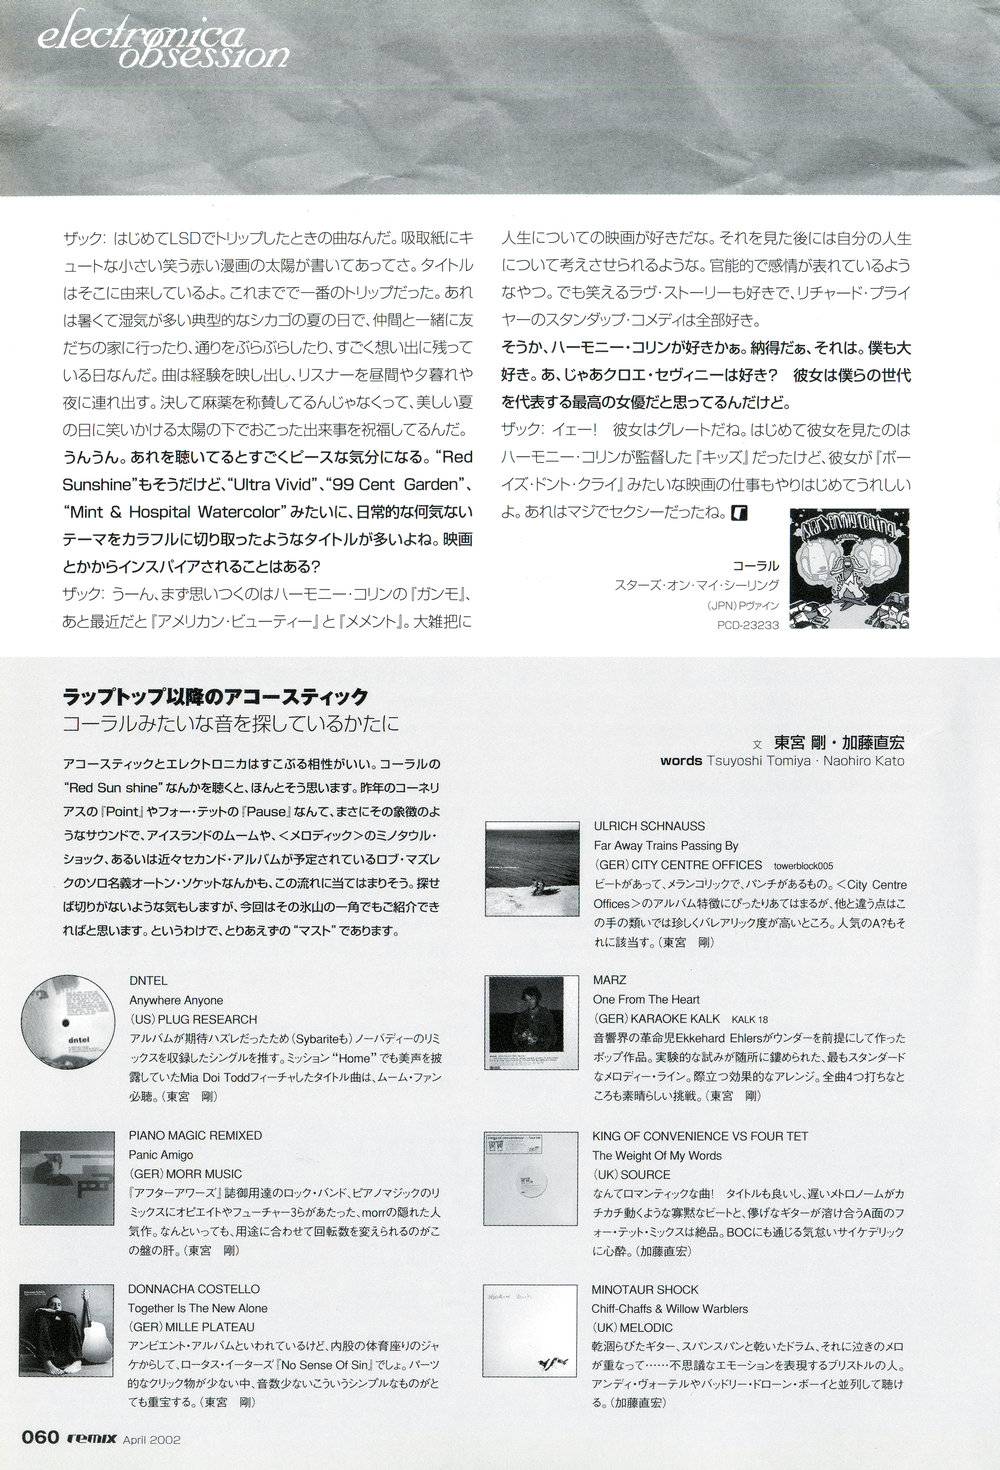 Remix Magazine - April 2002 - Issue 130 - Caural Feature 3_SMALL.jpg